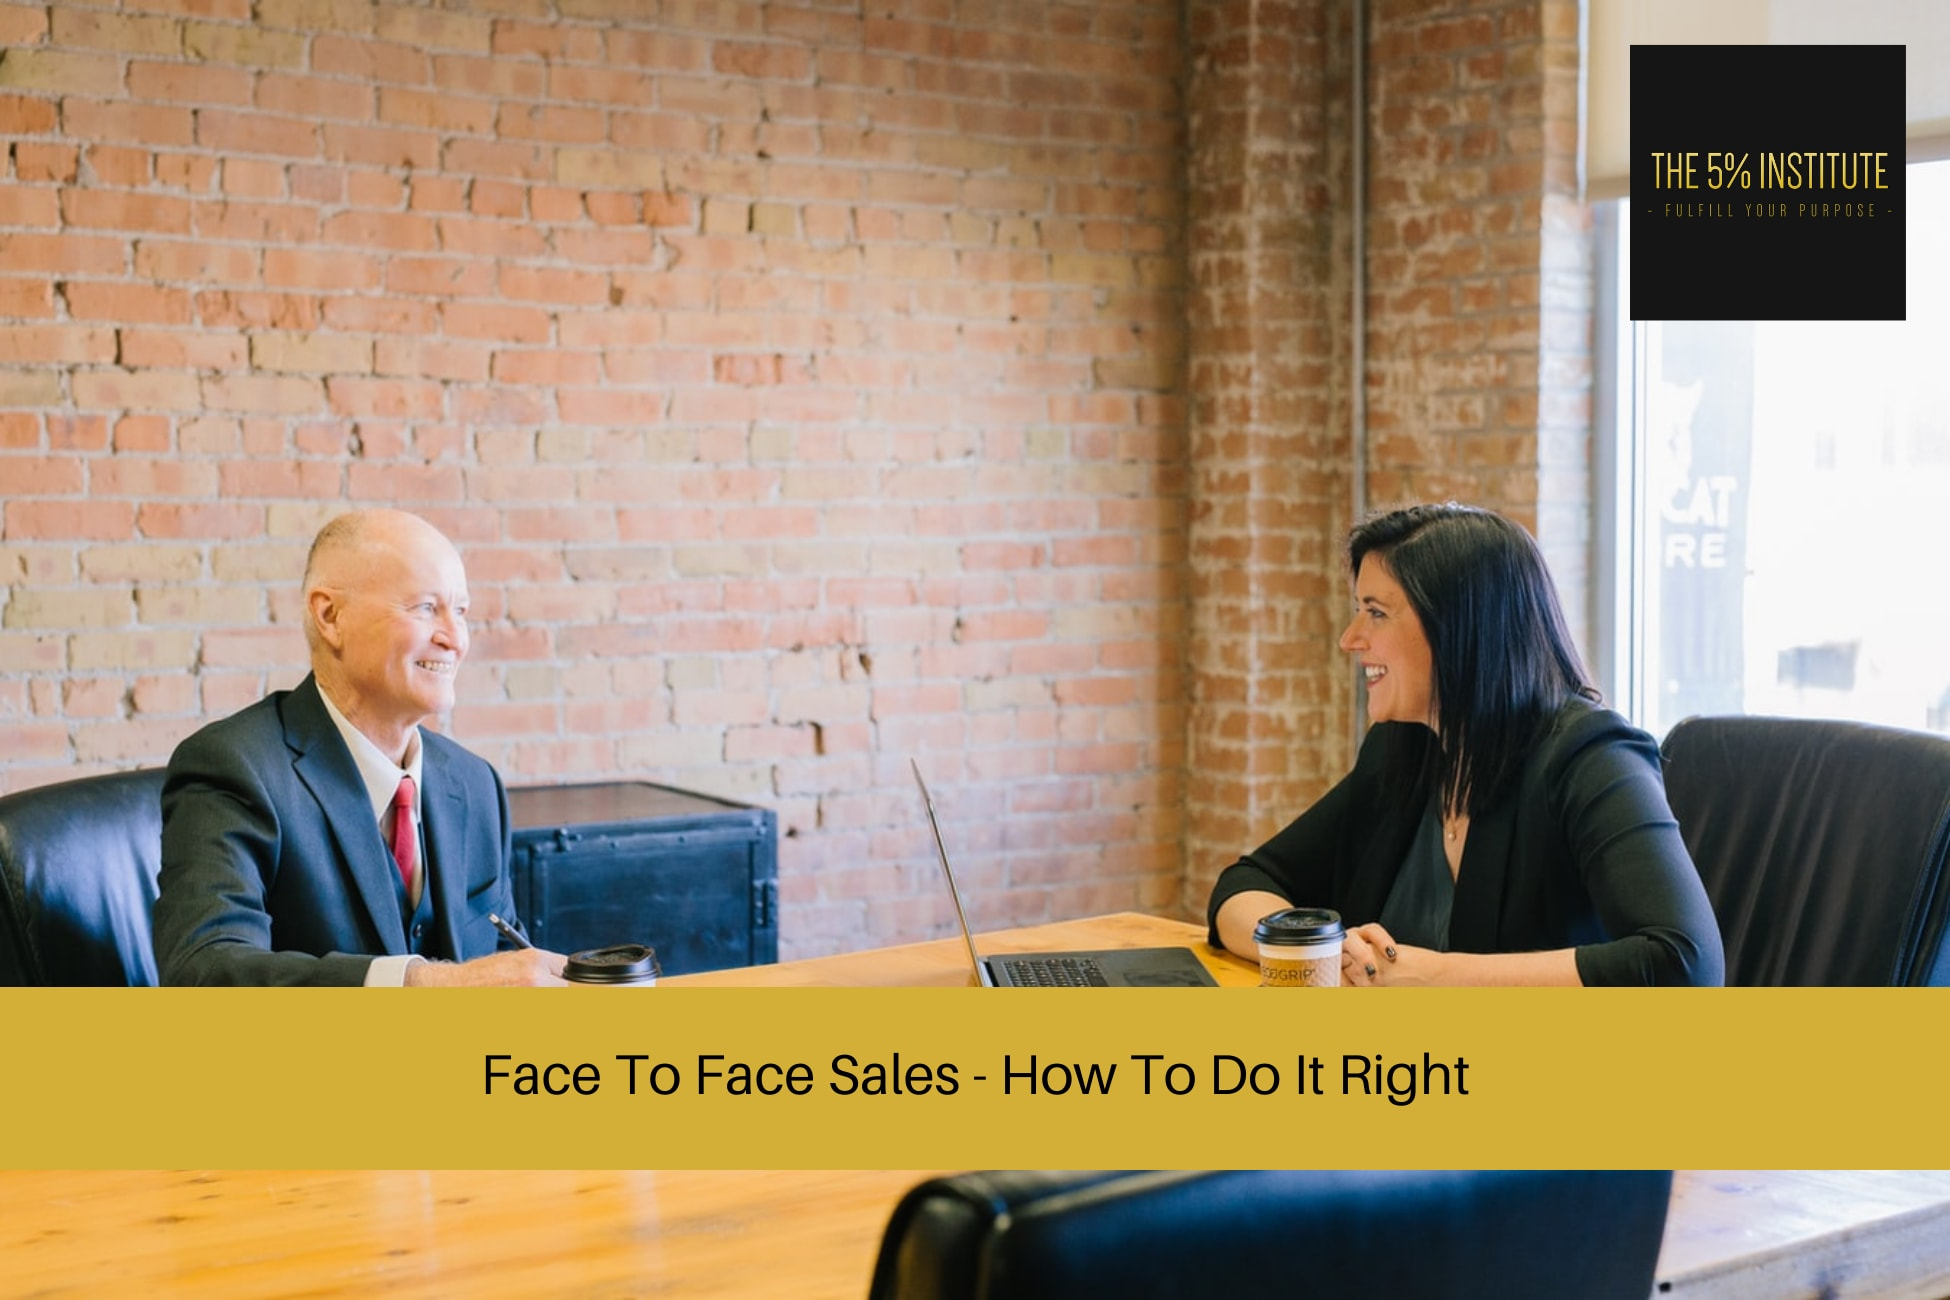 face to face sales